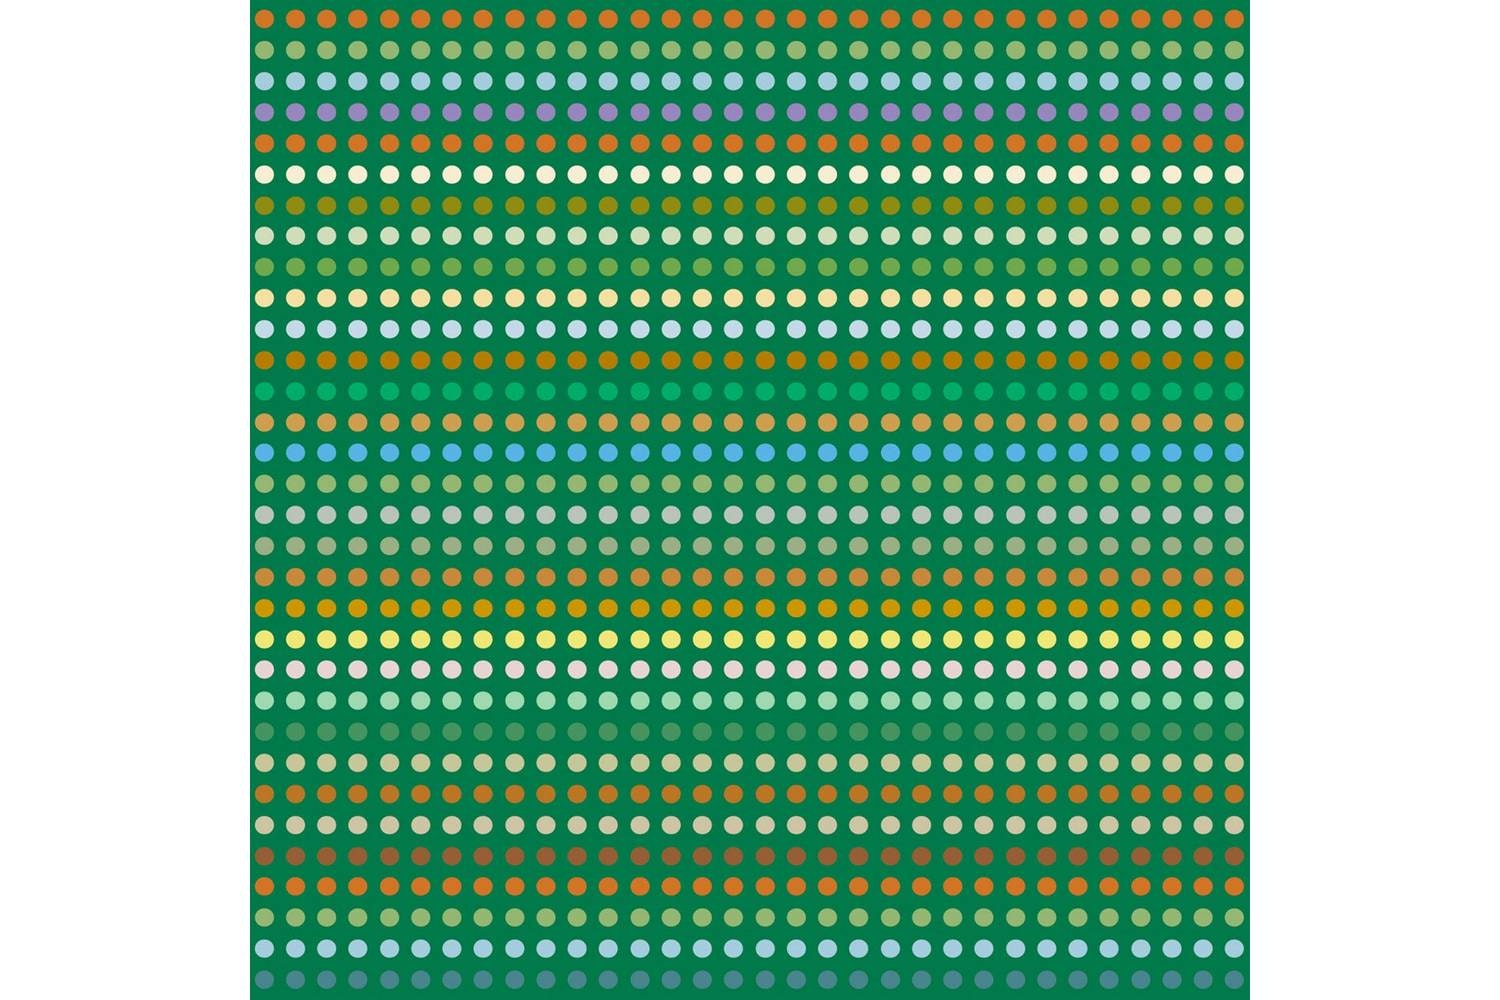 Dotted Green Carpet by Moooi Works for Moooi Carpets